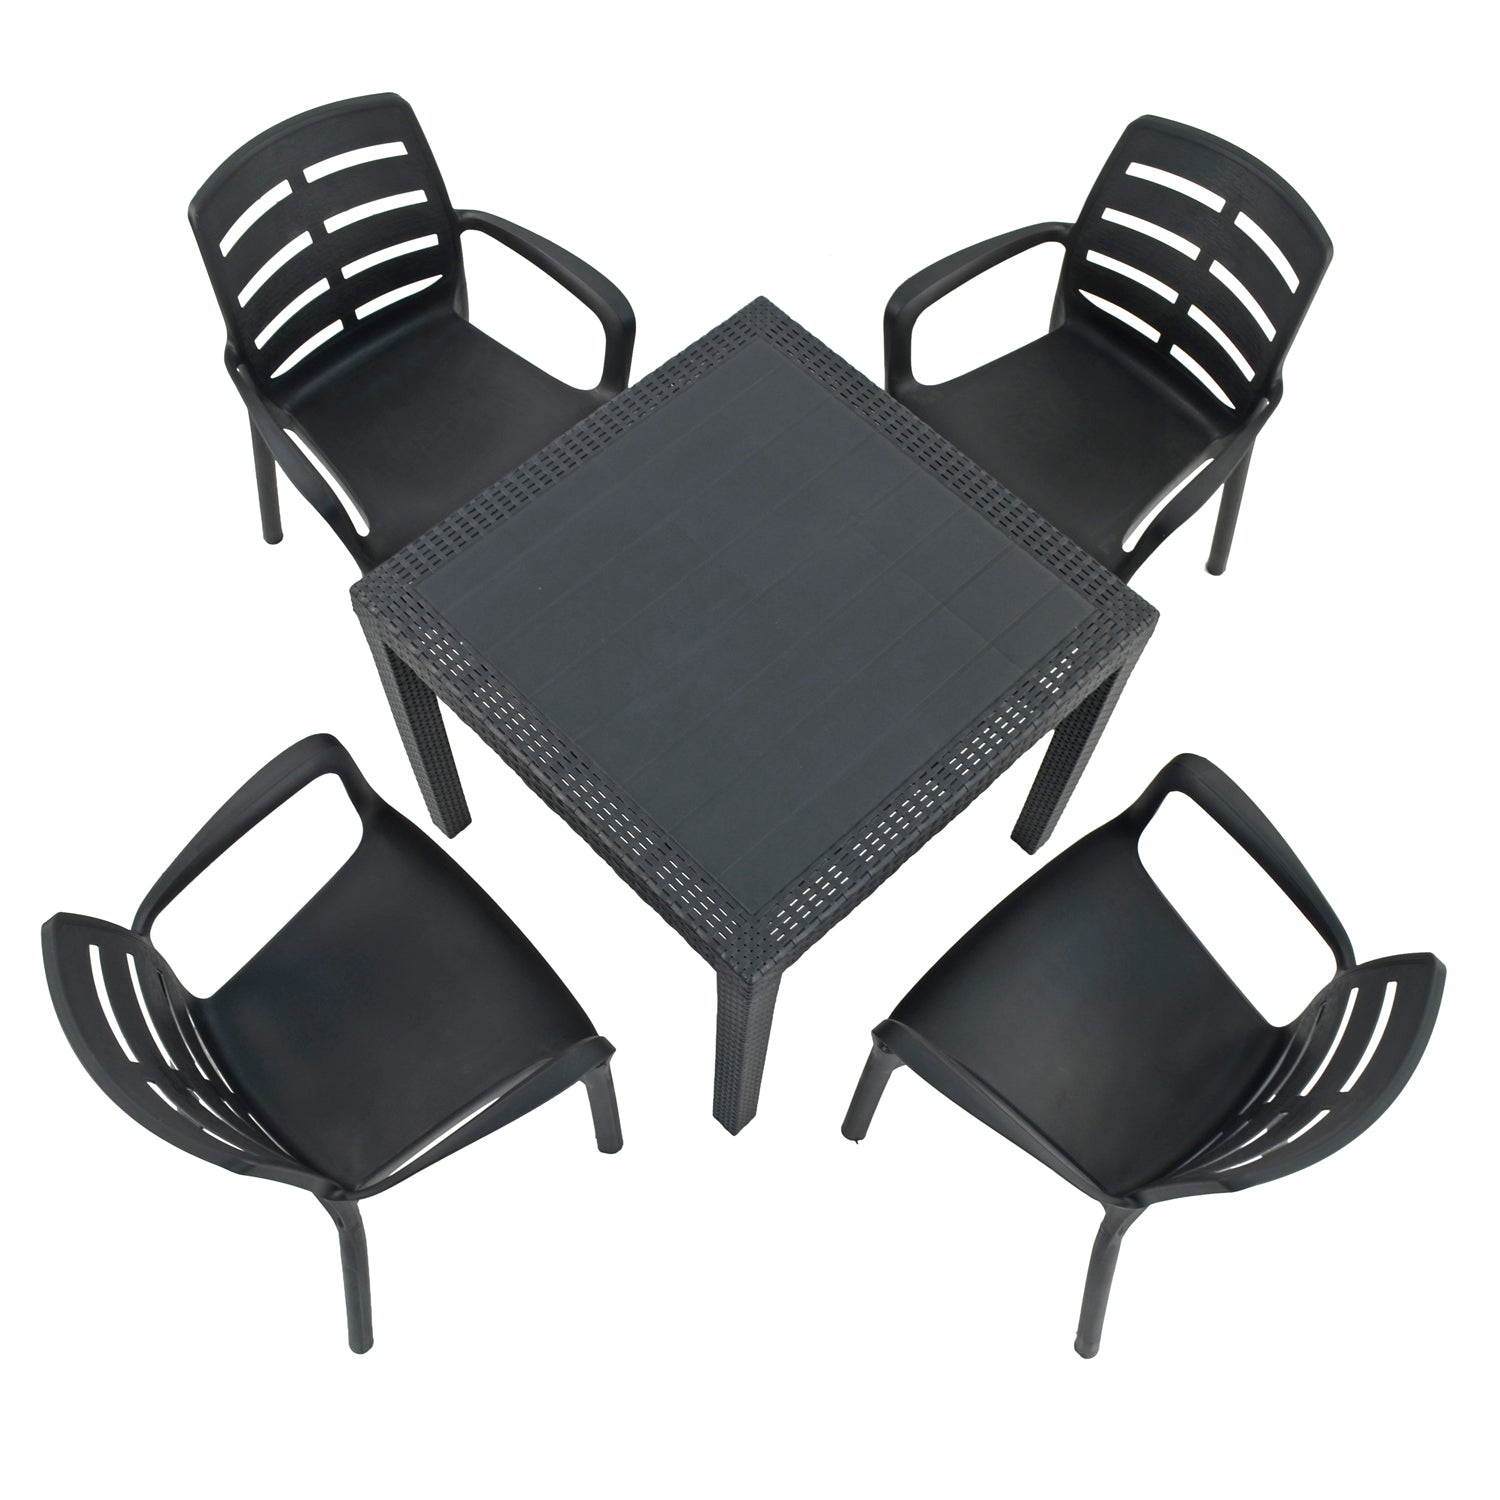 Trabella Salerno Square Table with 4 Siena Chairs Garden Set Anthracite - Ruby's Garden Boutique